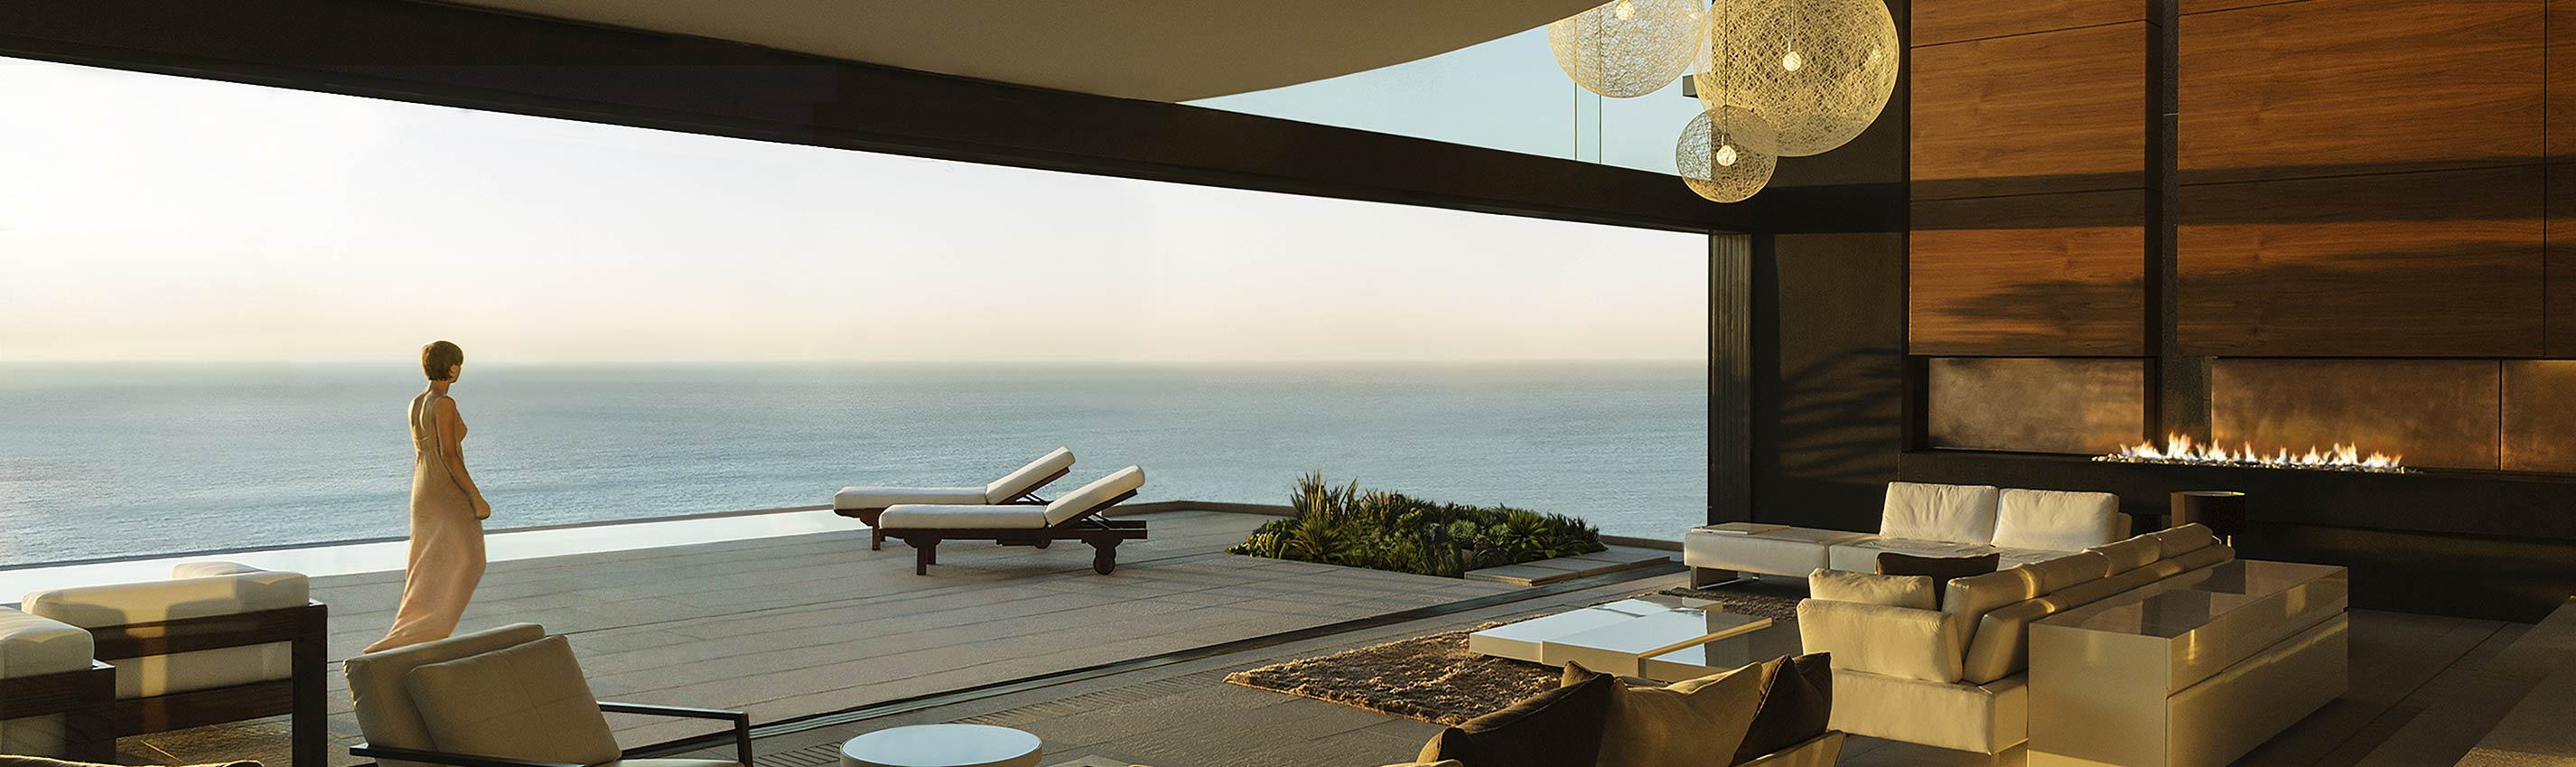 Elegant woman strolls on the terrace of a modern home with sweeping ocean views.